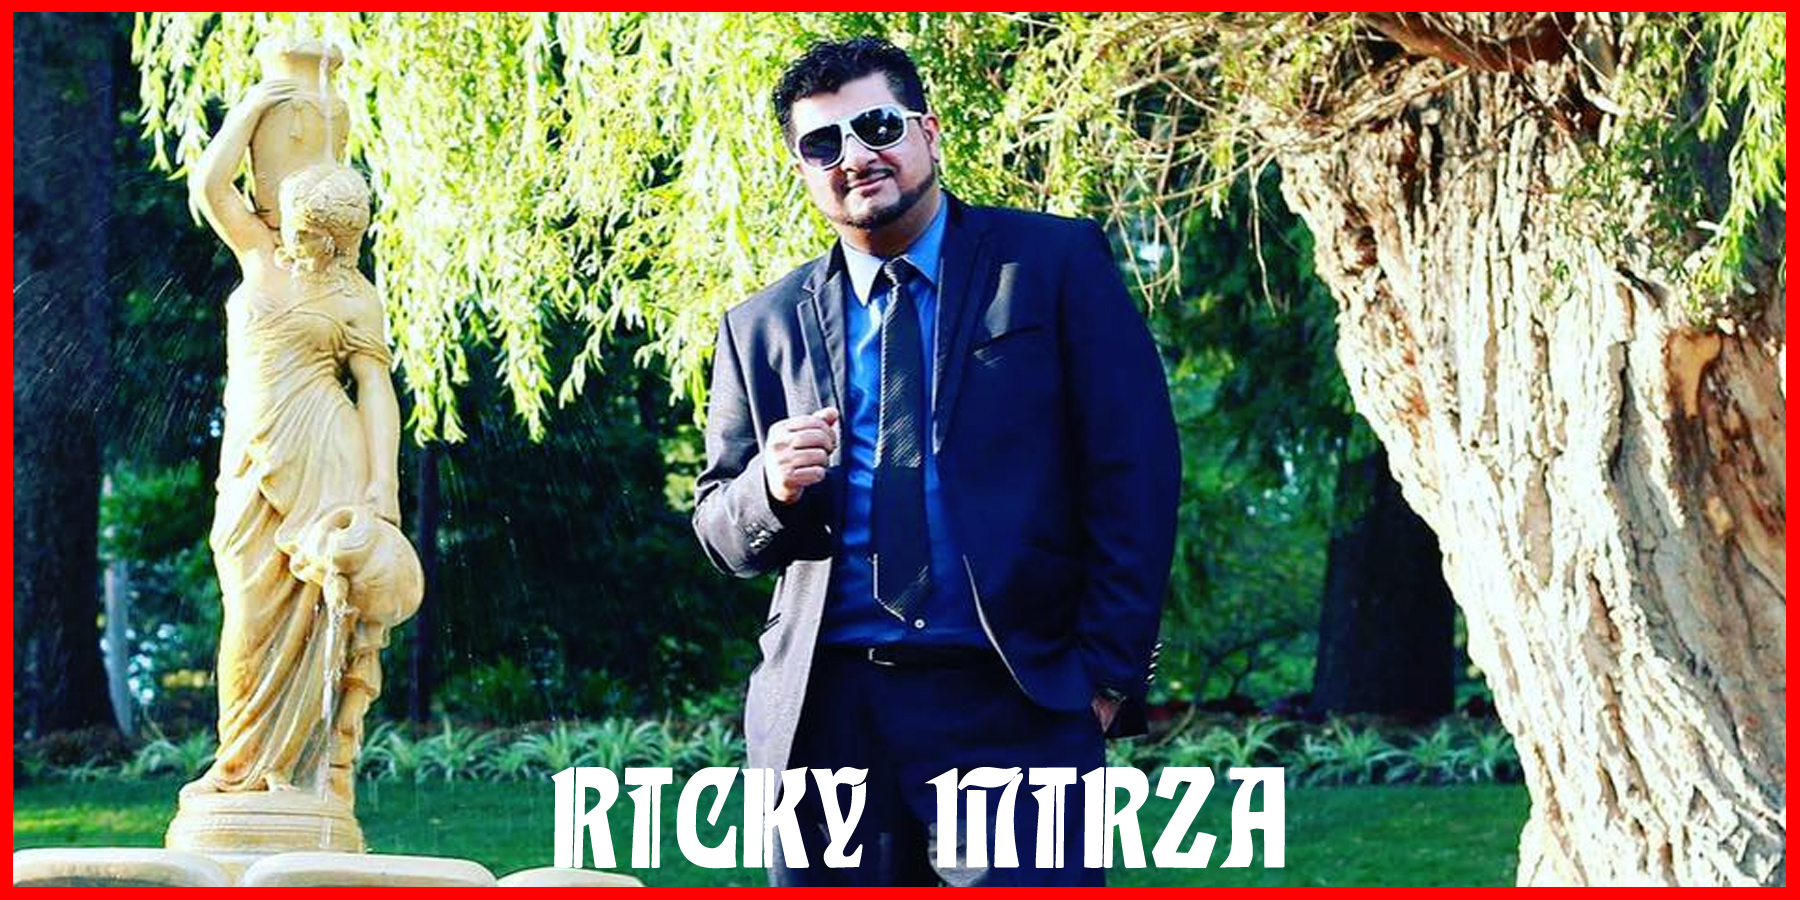 Ricky mirza leo 39 s skilled caregivers for Live in caregiver room and board